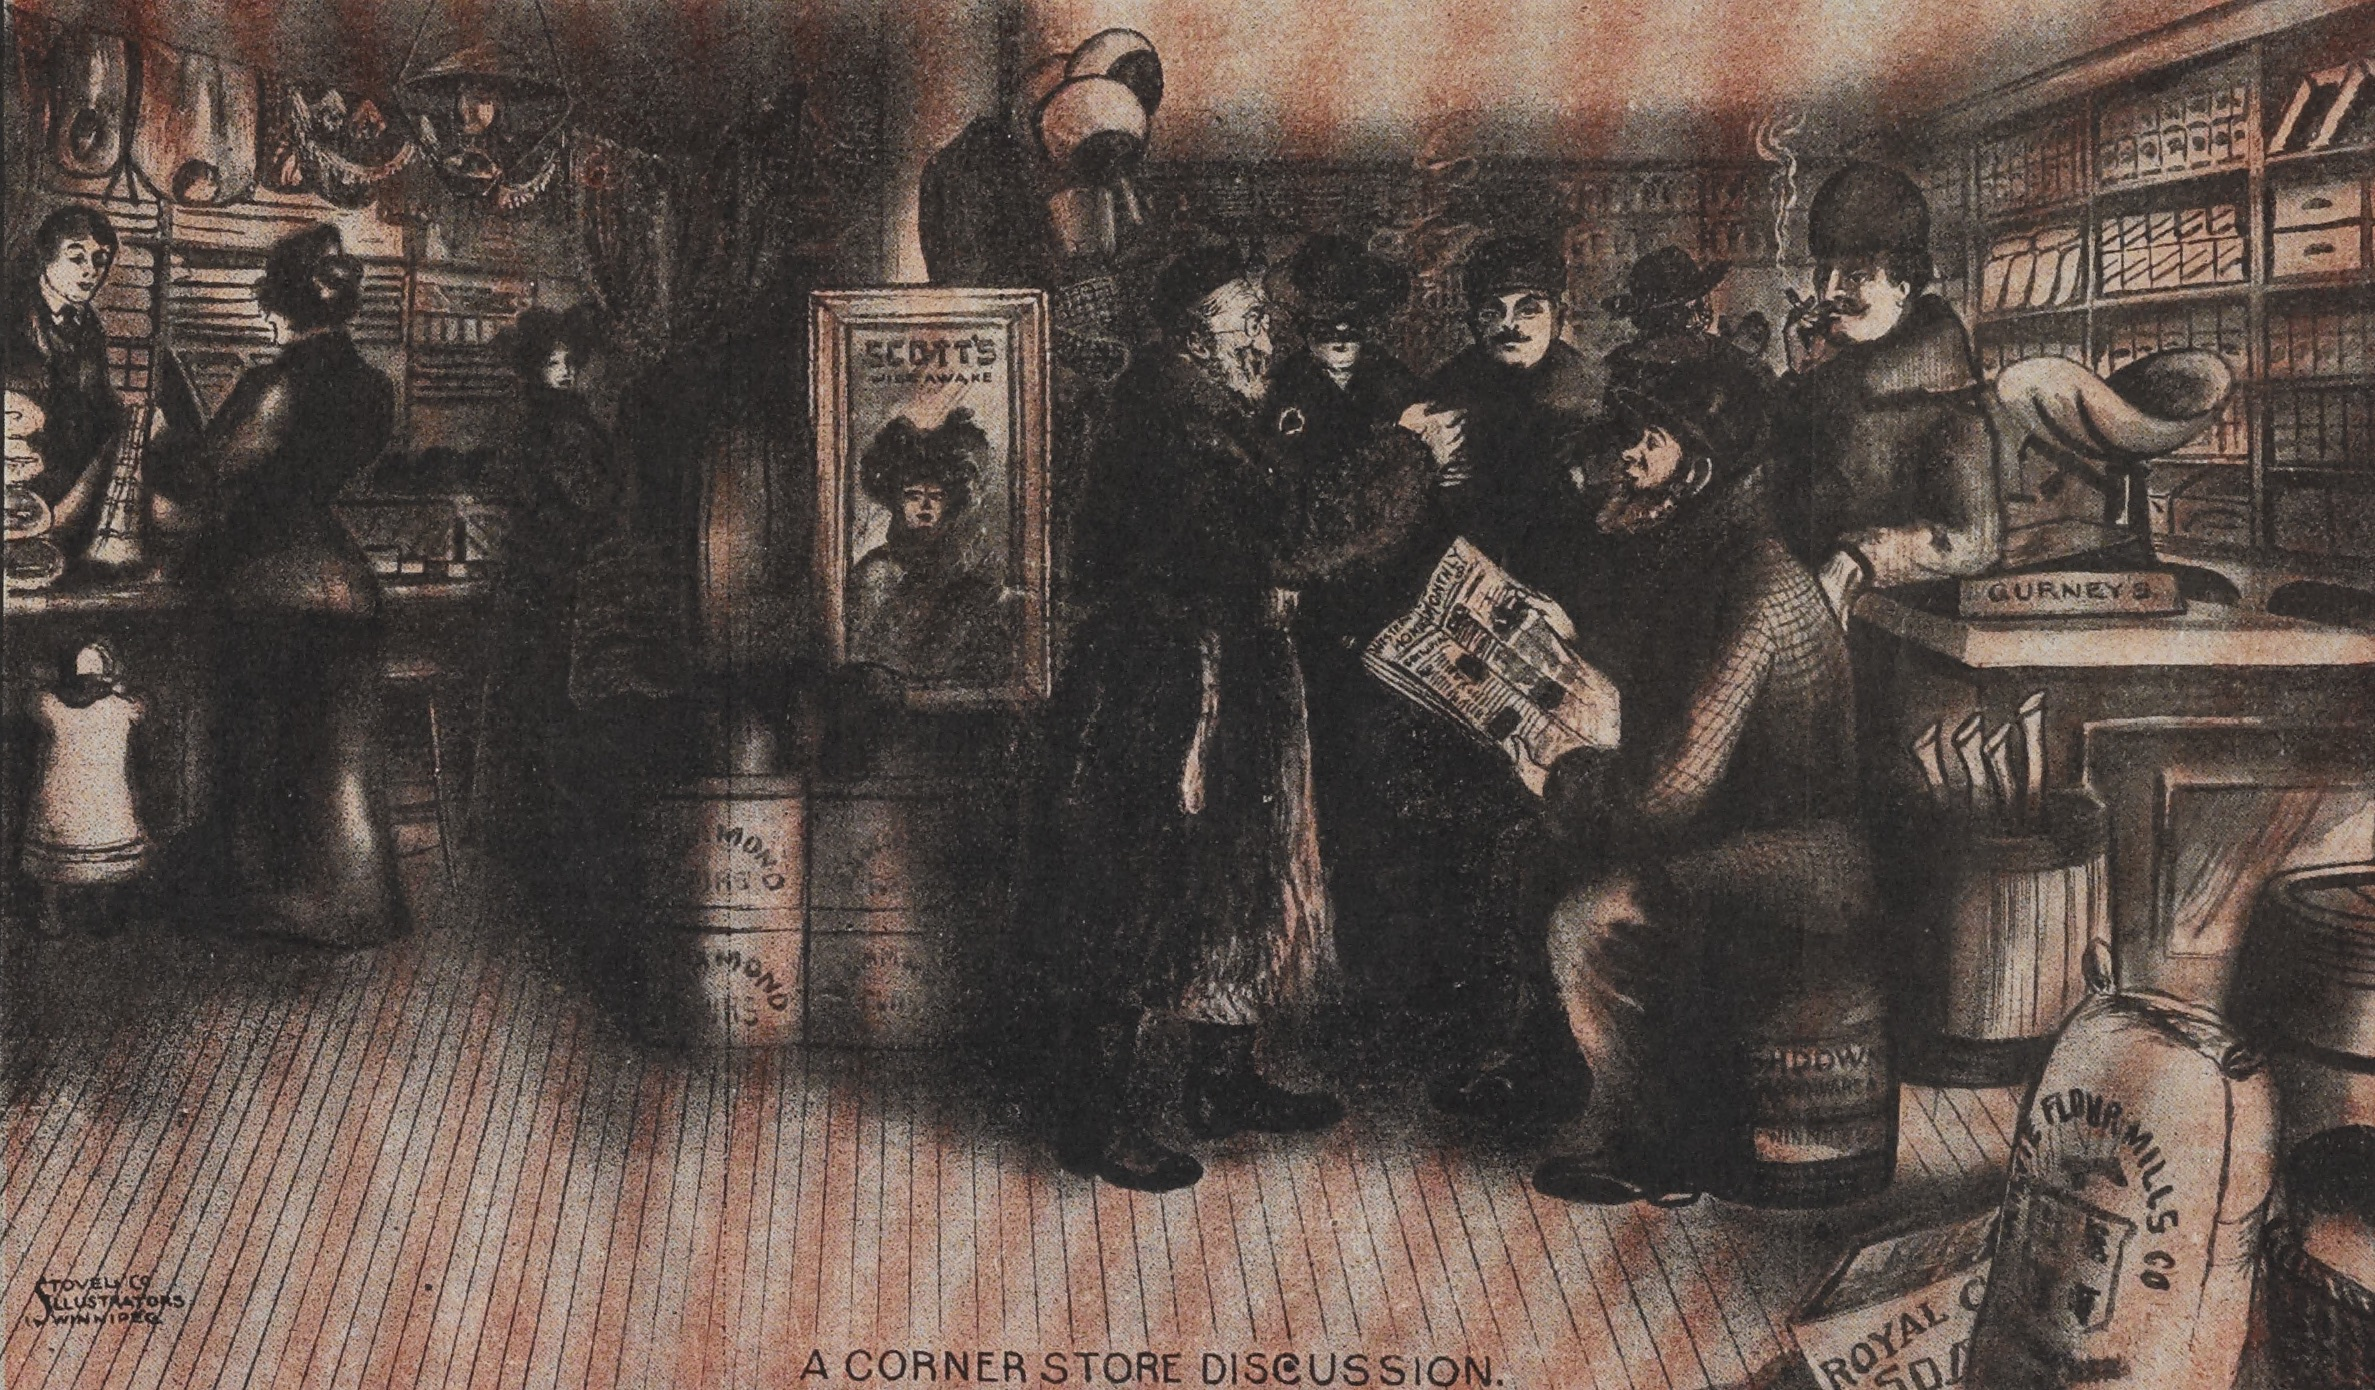 Cover detail by Stovel Illustrators, January 1904. Men hold a discussion with printed matter a focal point while ladies shop.